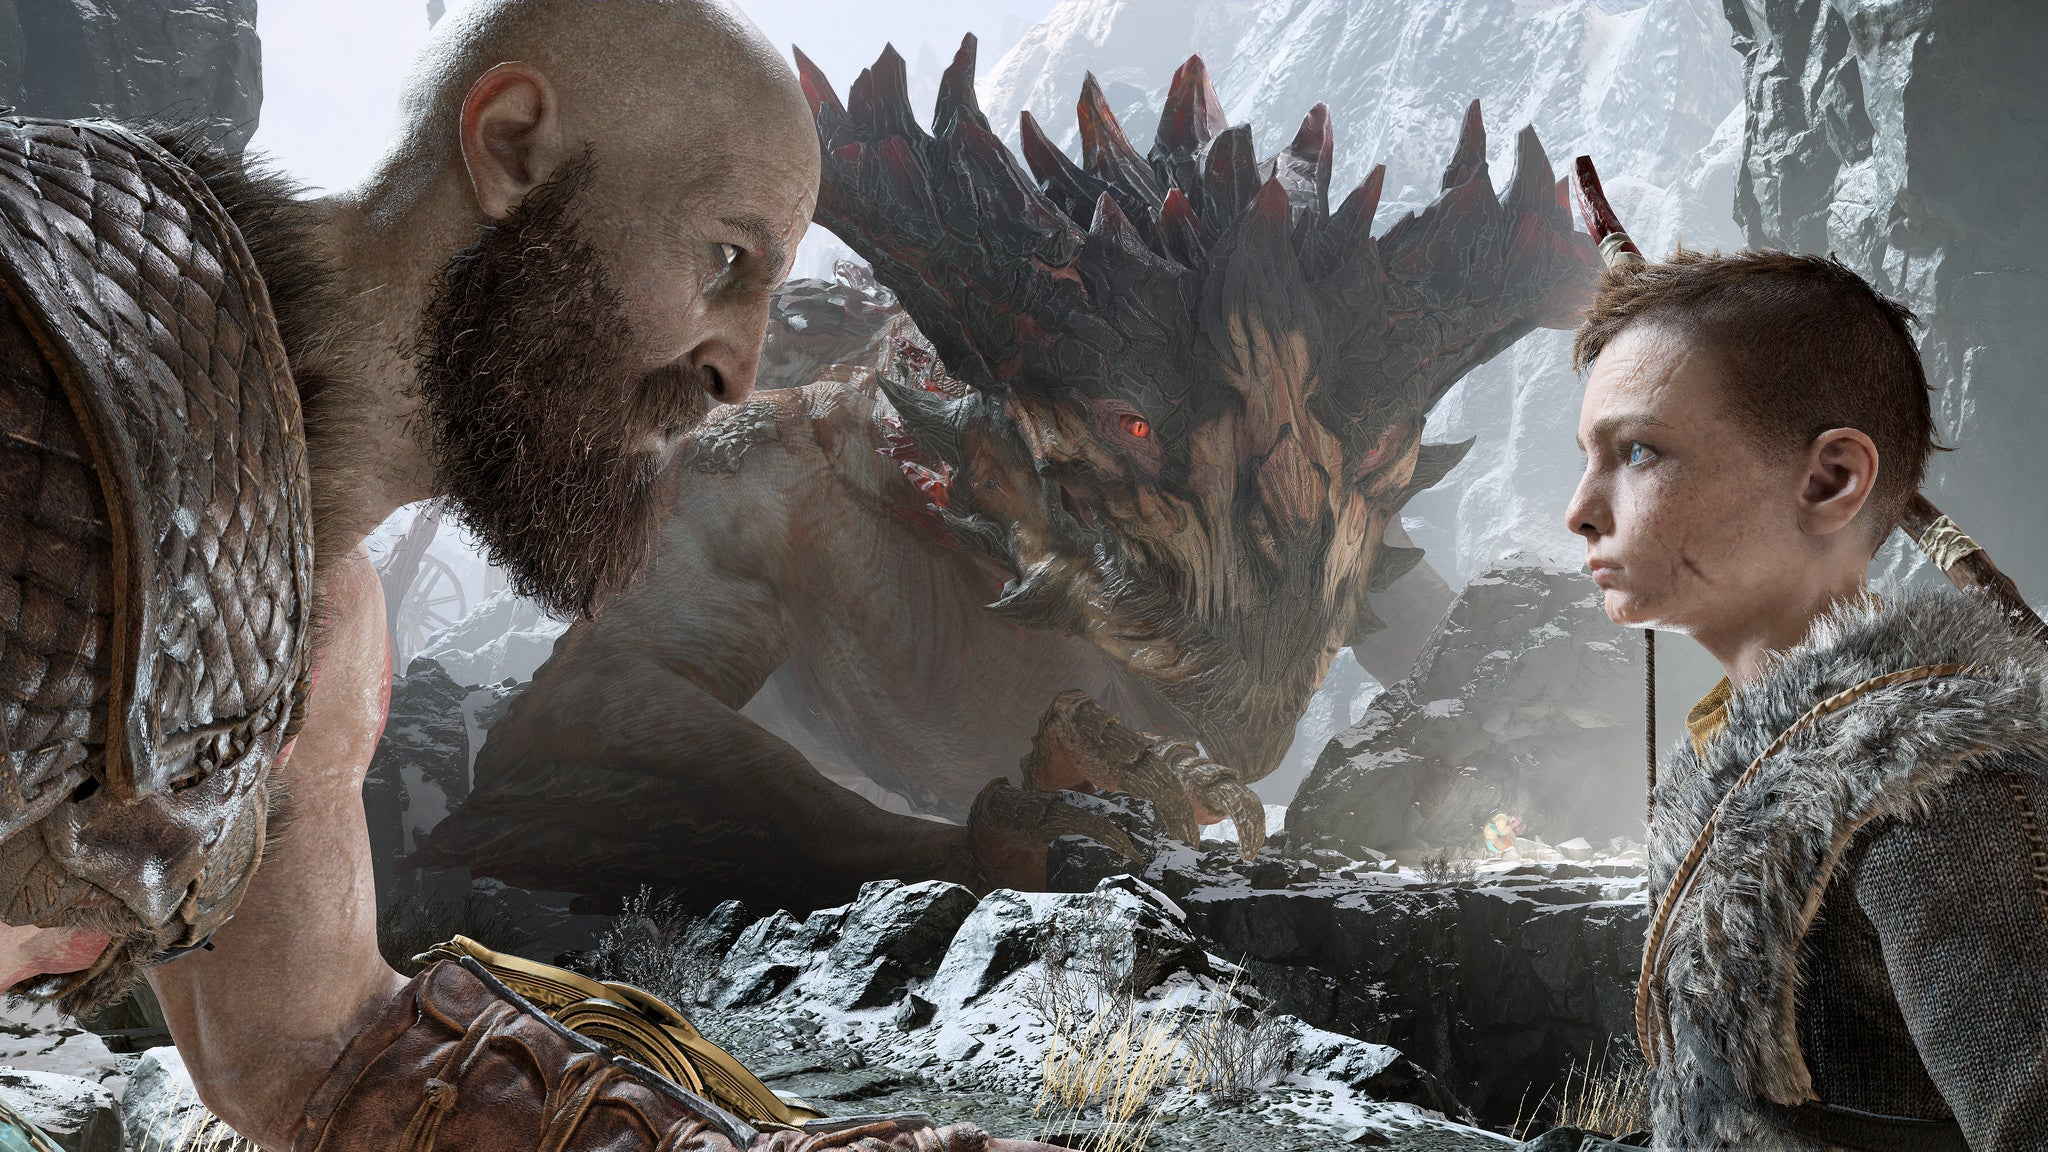 The Misadventures Of Playing God Of War With My Dad